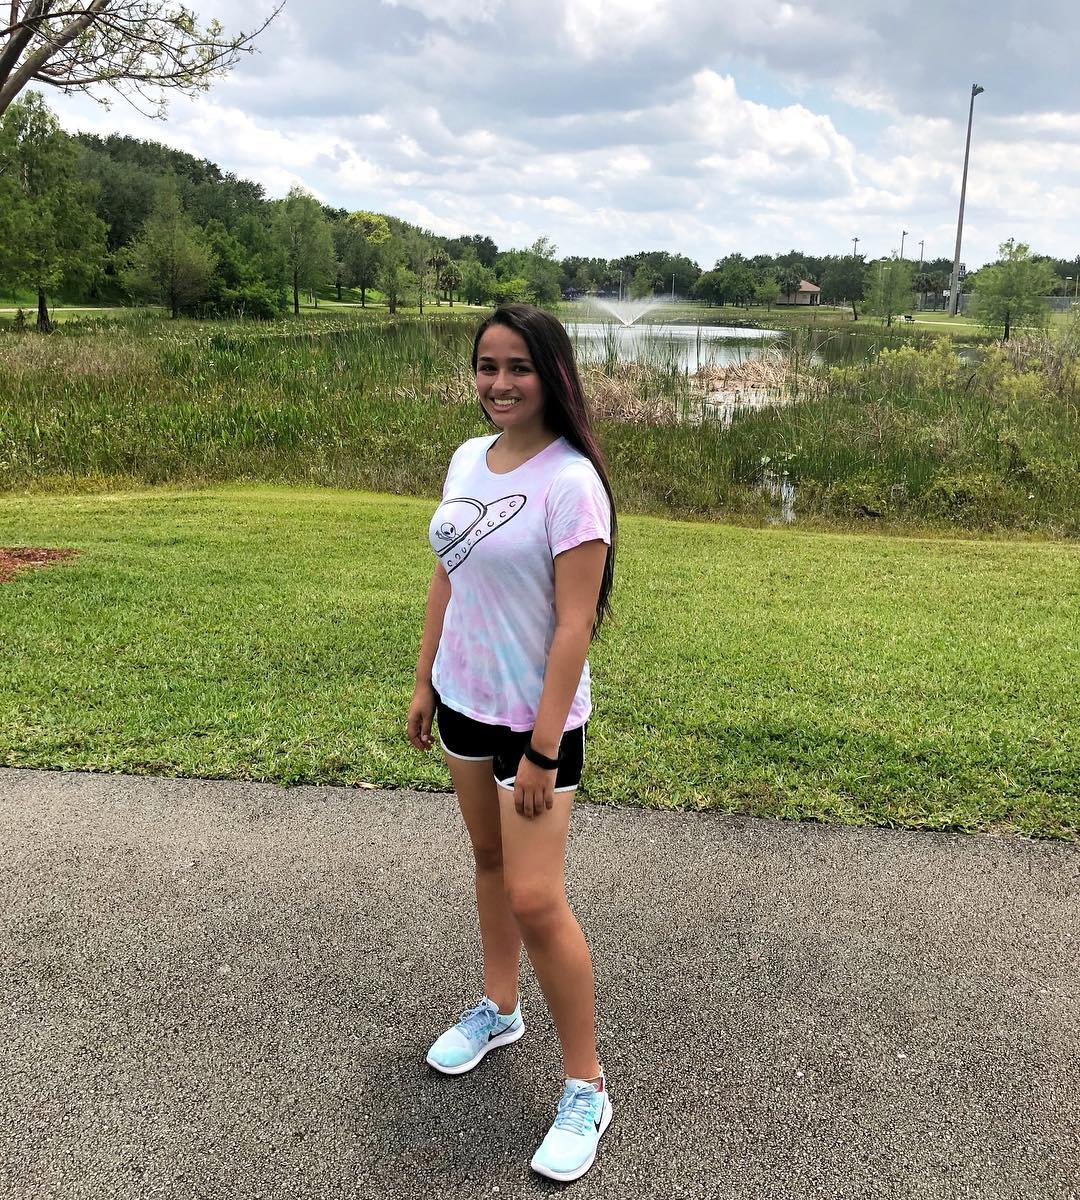 Jazz Jennings American YouTube Star and TV Personality